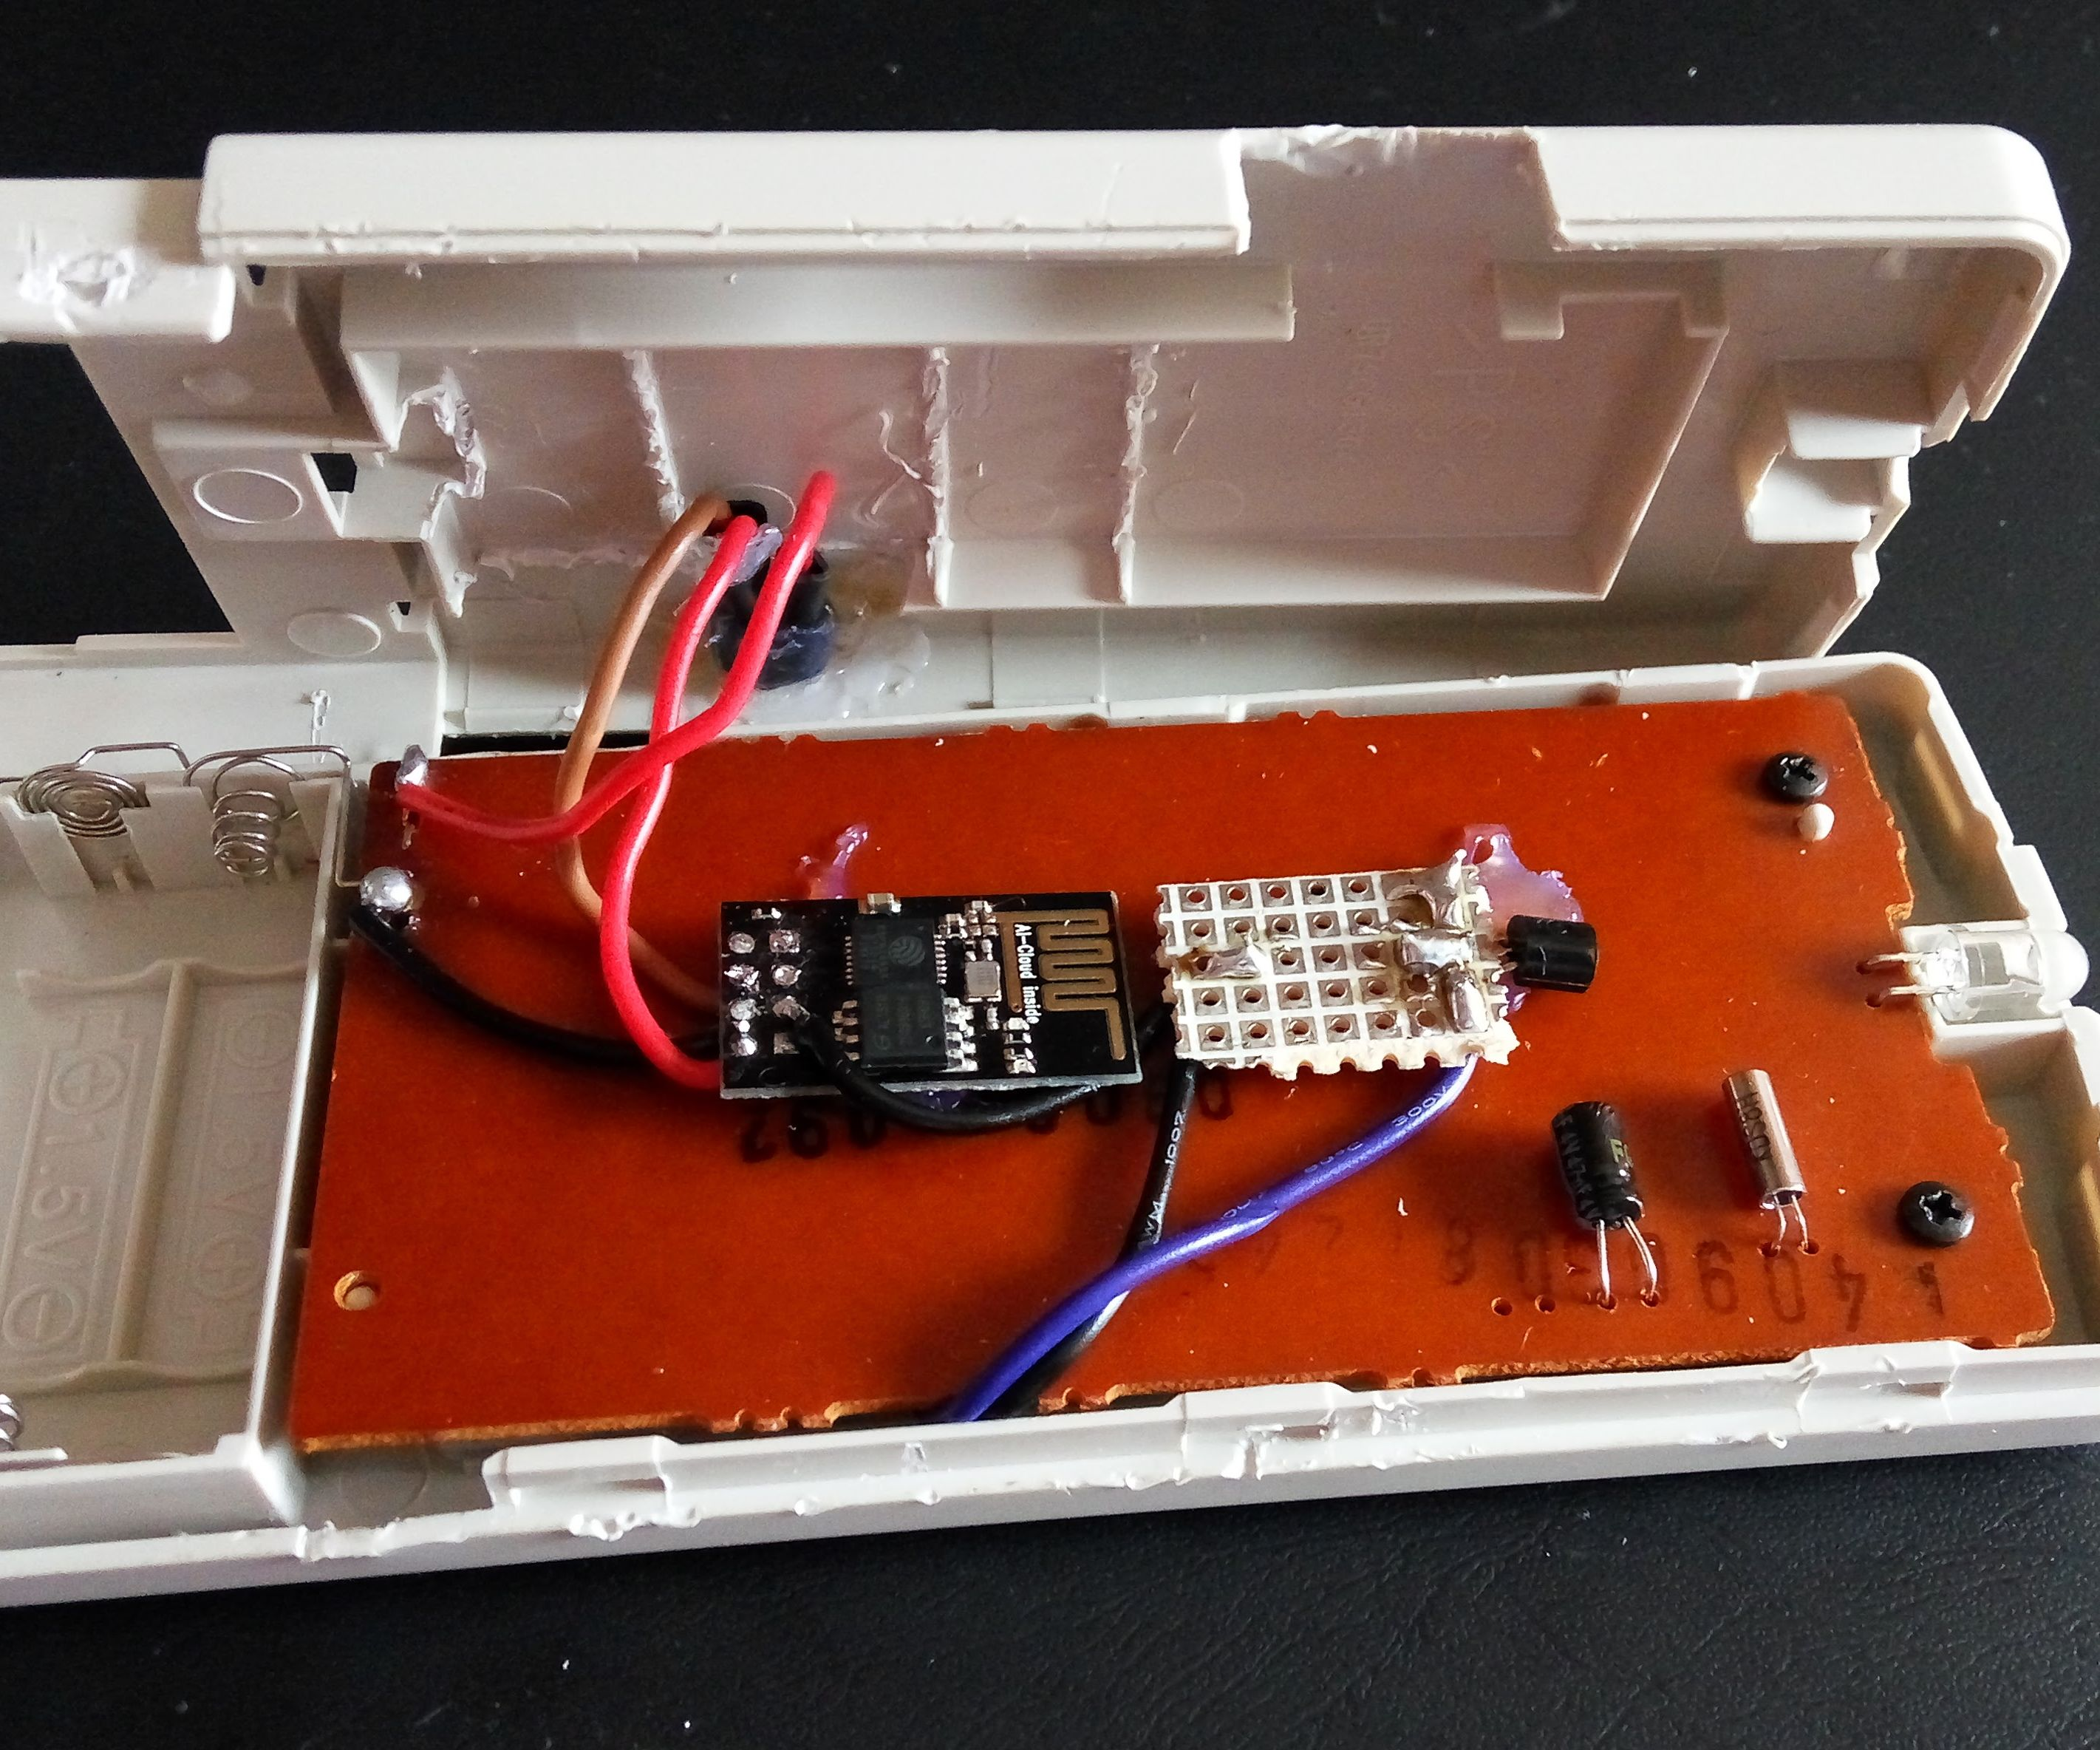 Control your Air Conditioner(IOT) with ESP8266